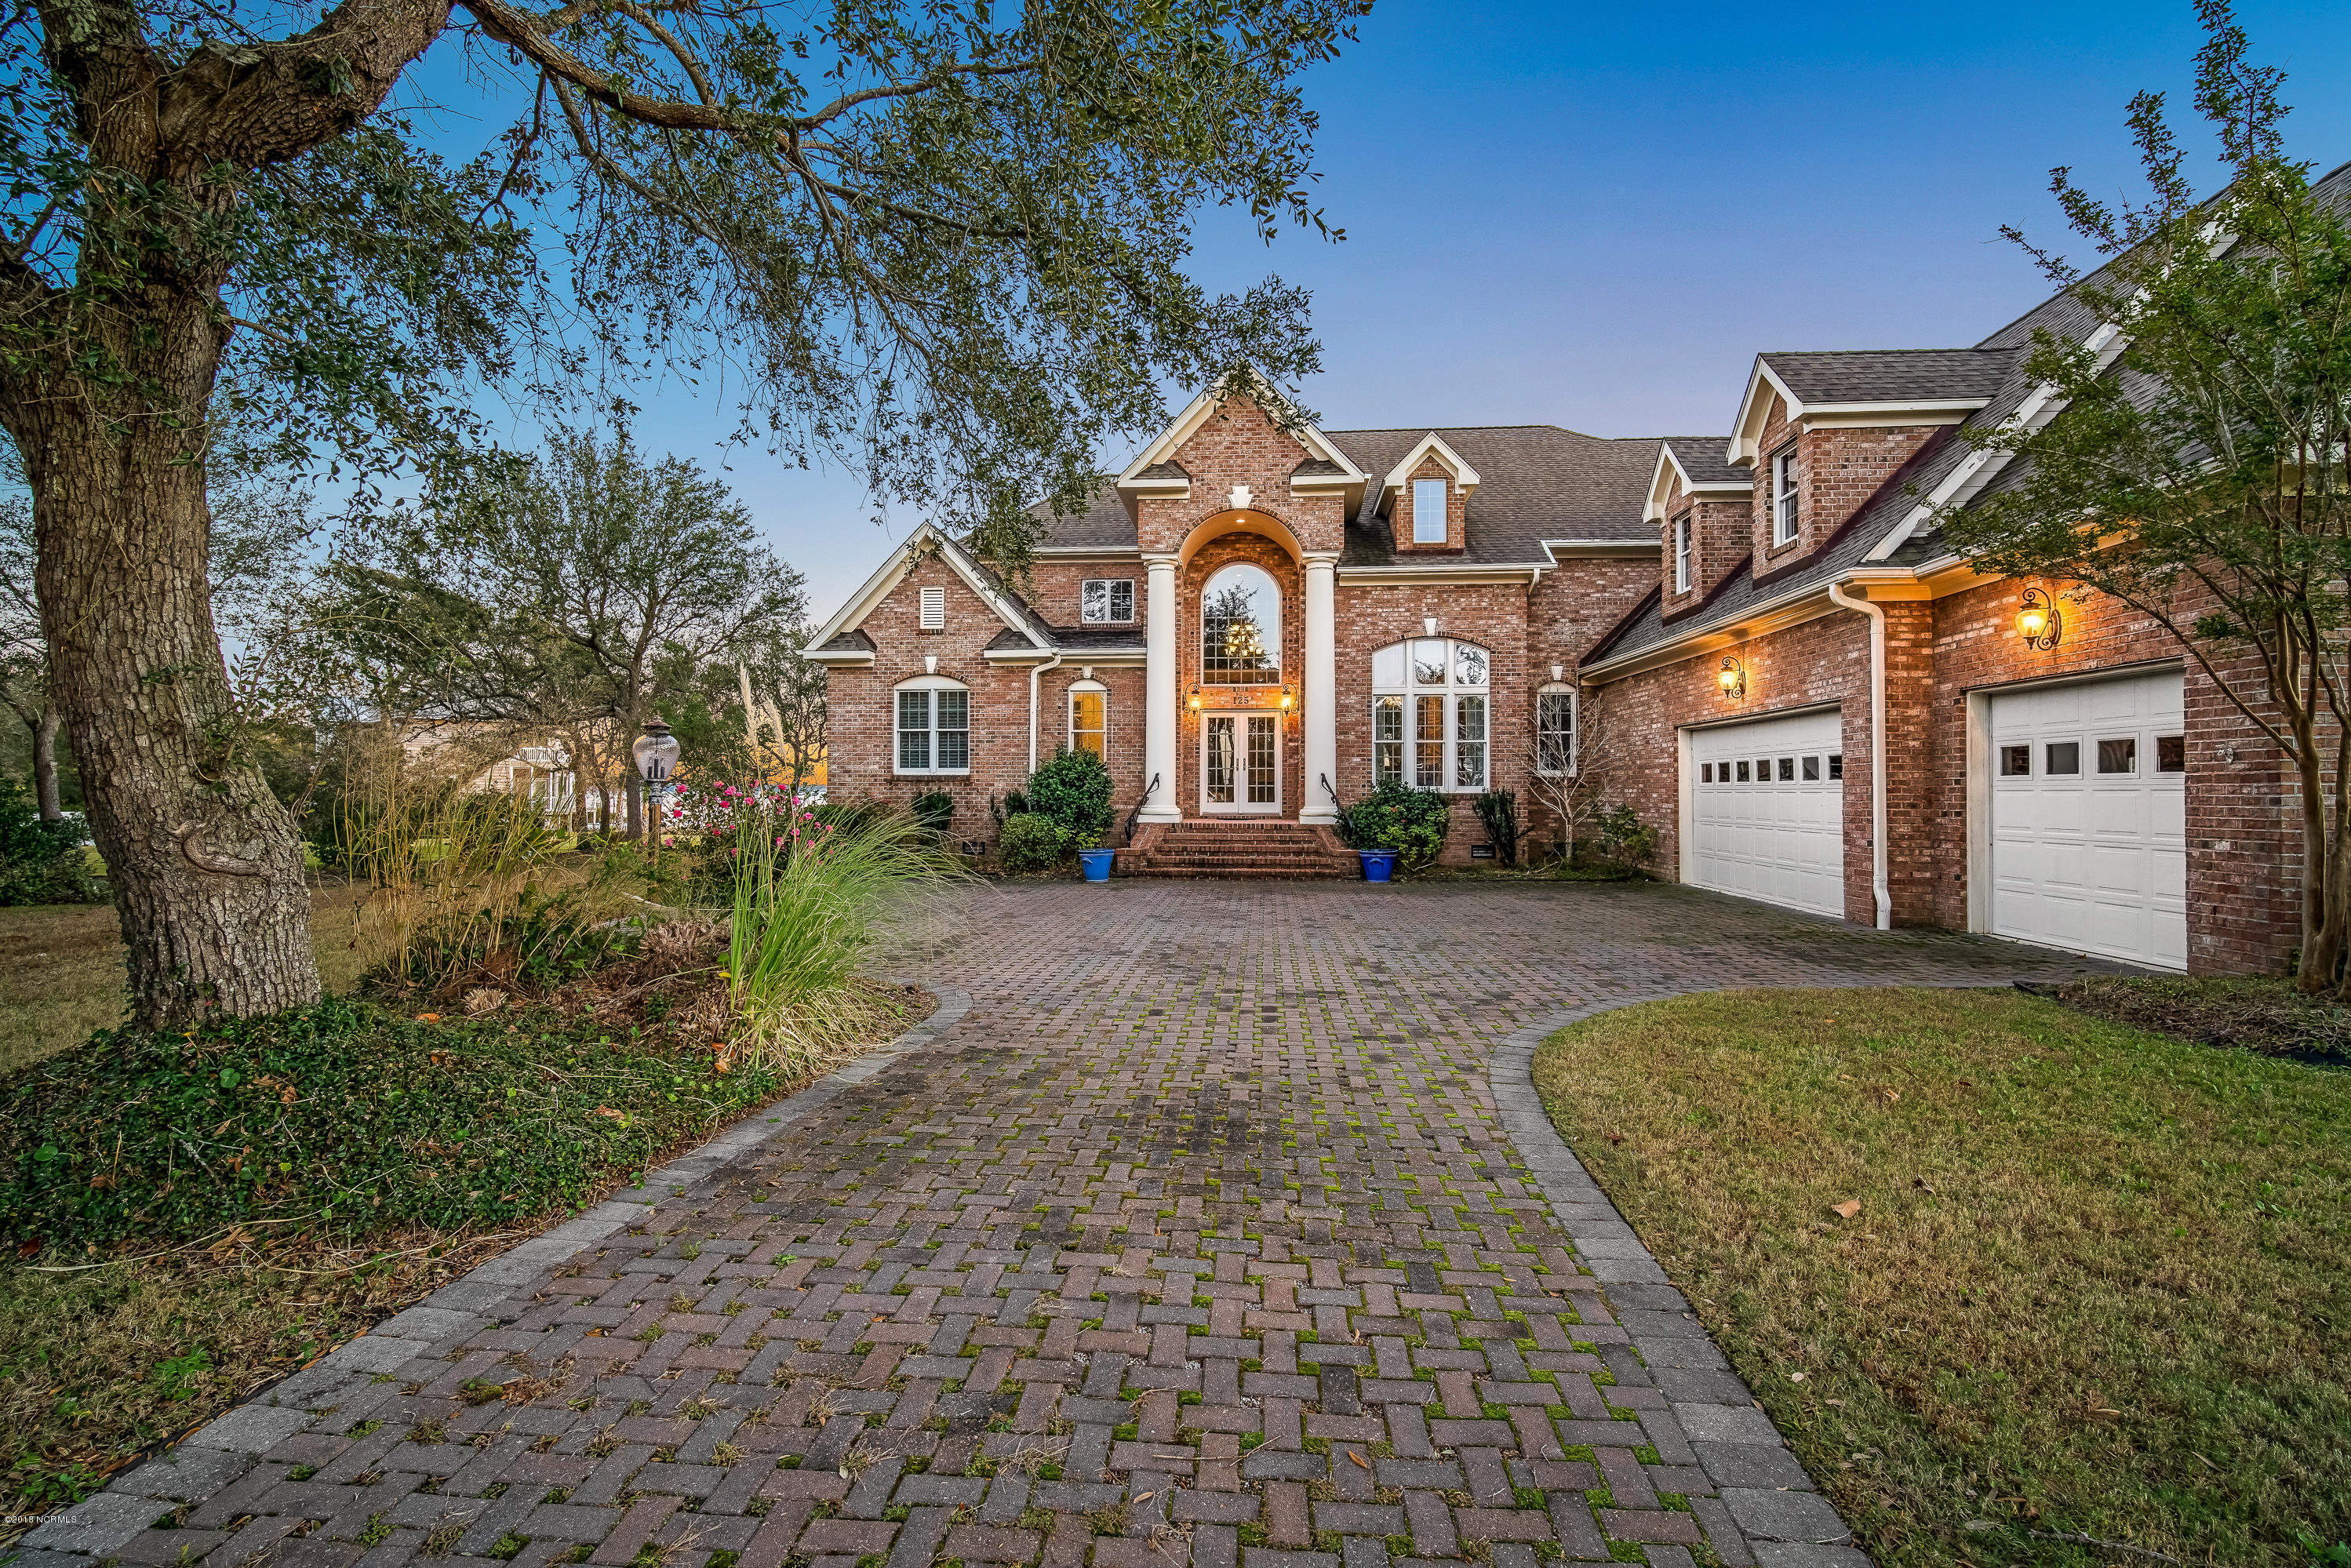 125 Camp Morehead Drive, Morehead City, North Carolina, 5 Bedrooms Bedrooms, 11 Rooms Rooms,4 BathroomsBathrooms,Single family residence,For sale,Camp Morehead,100140121